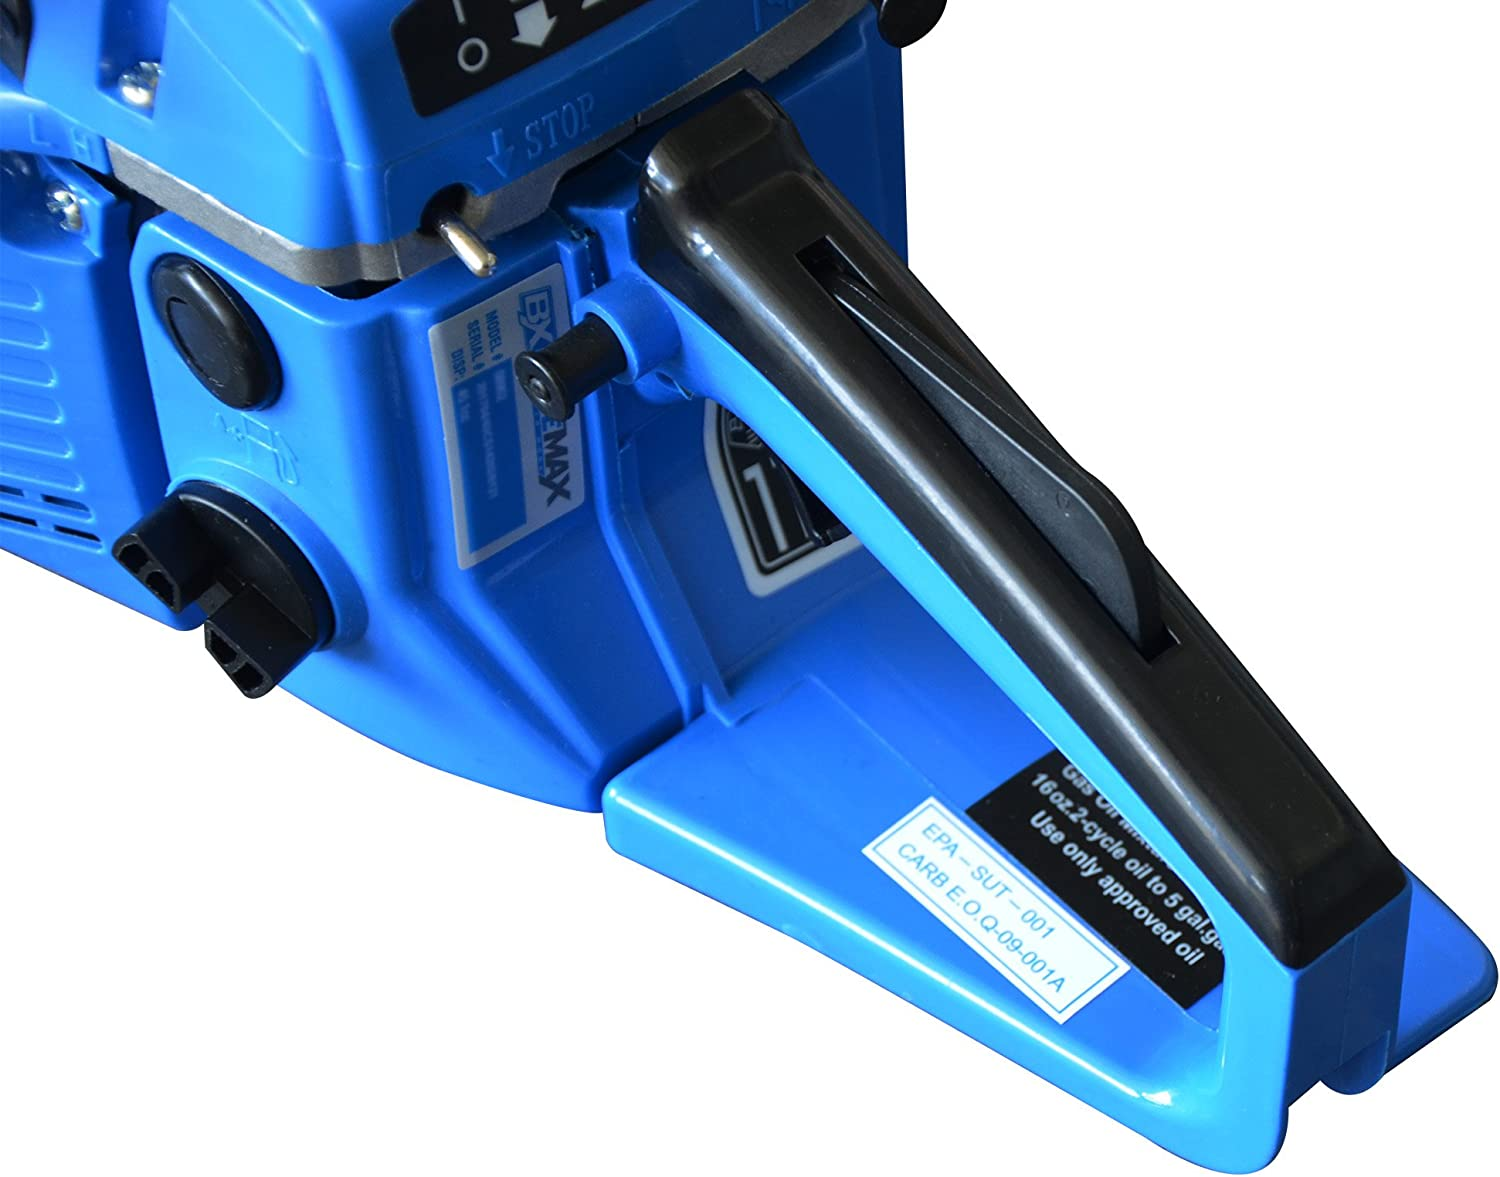 Blue Max 6595 Chainsaws product image 3